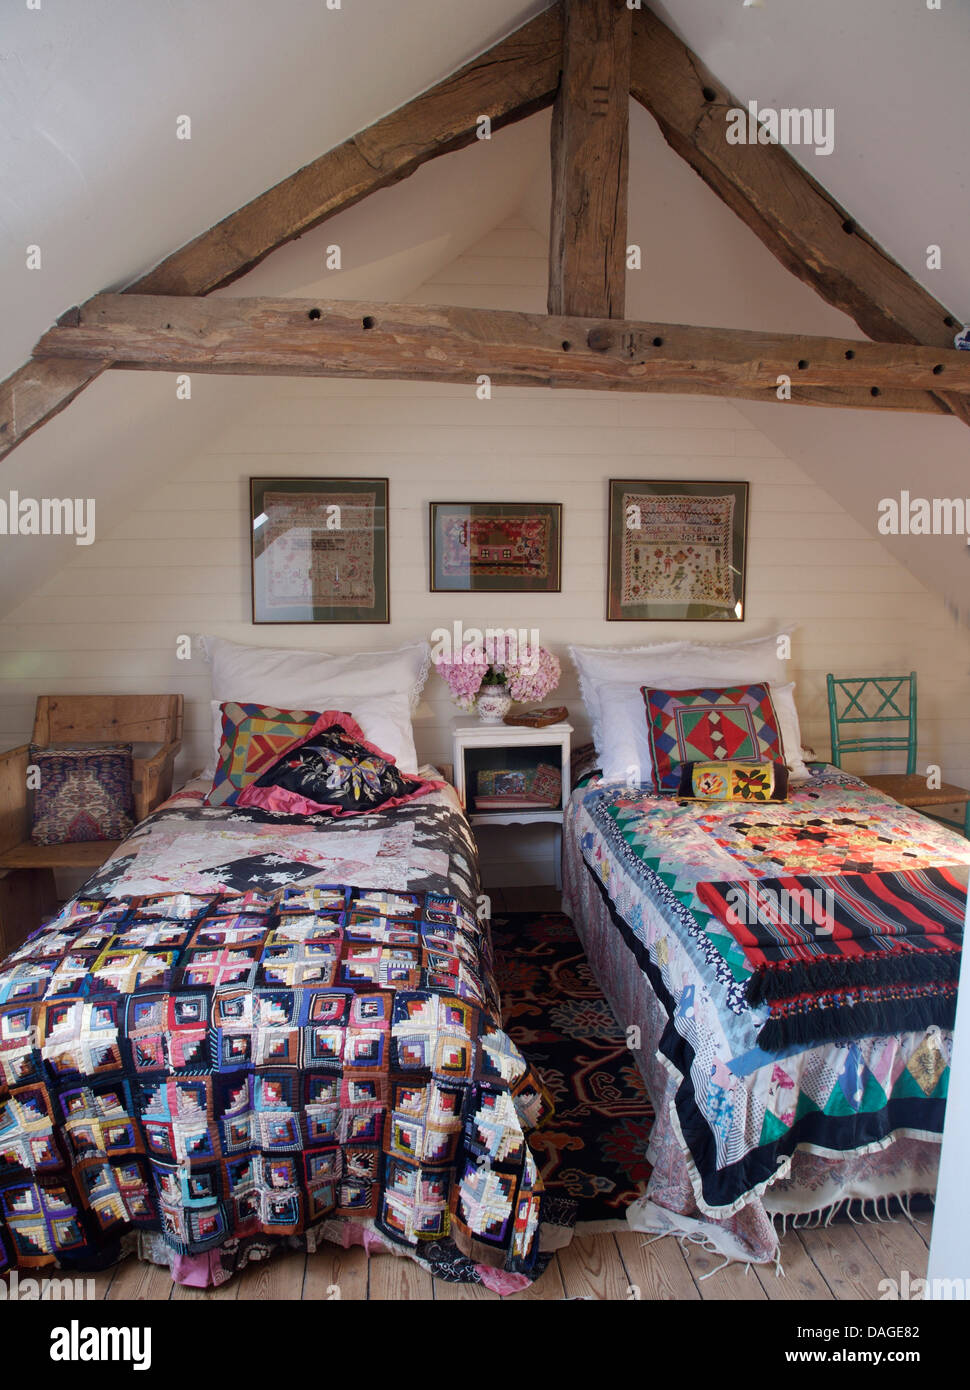 Colorful Patchwork Quilts On Twin Beds In Cottage Bedroom With Rustic Stock Photo Alamy